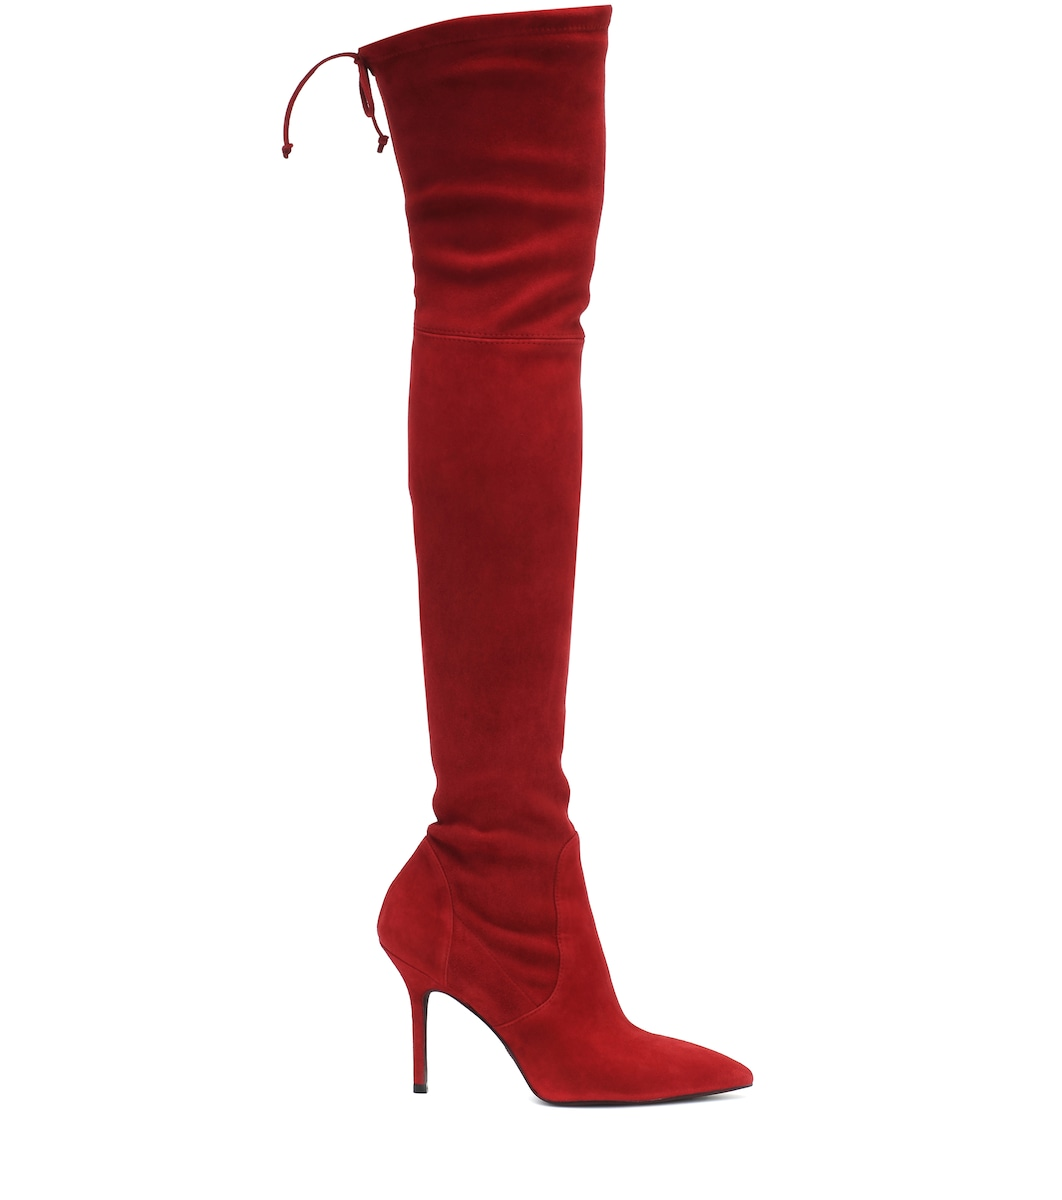 Carine suede over-the-knee boots